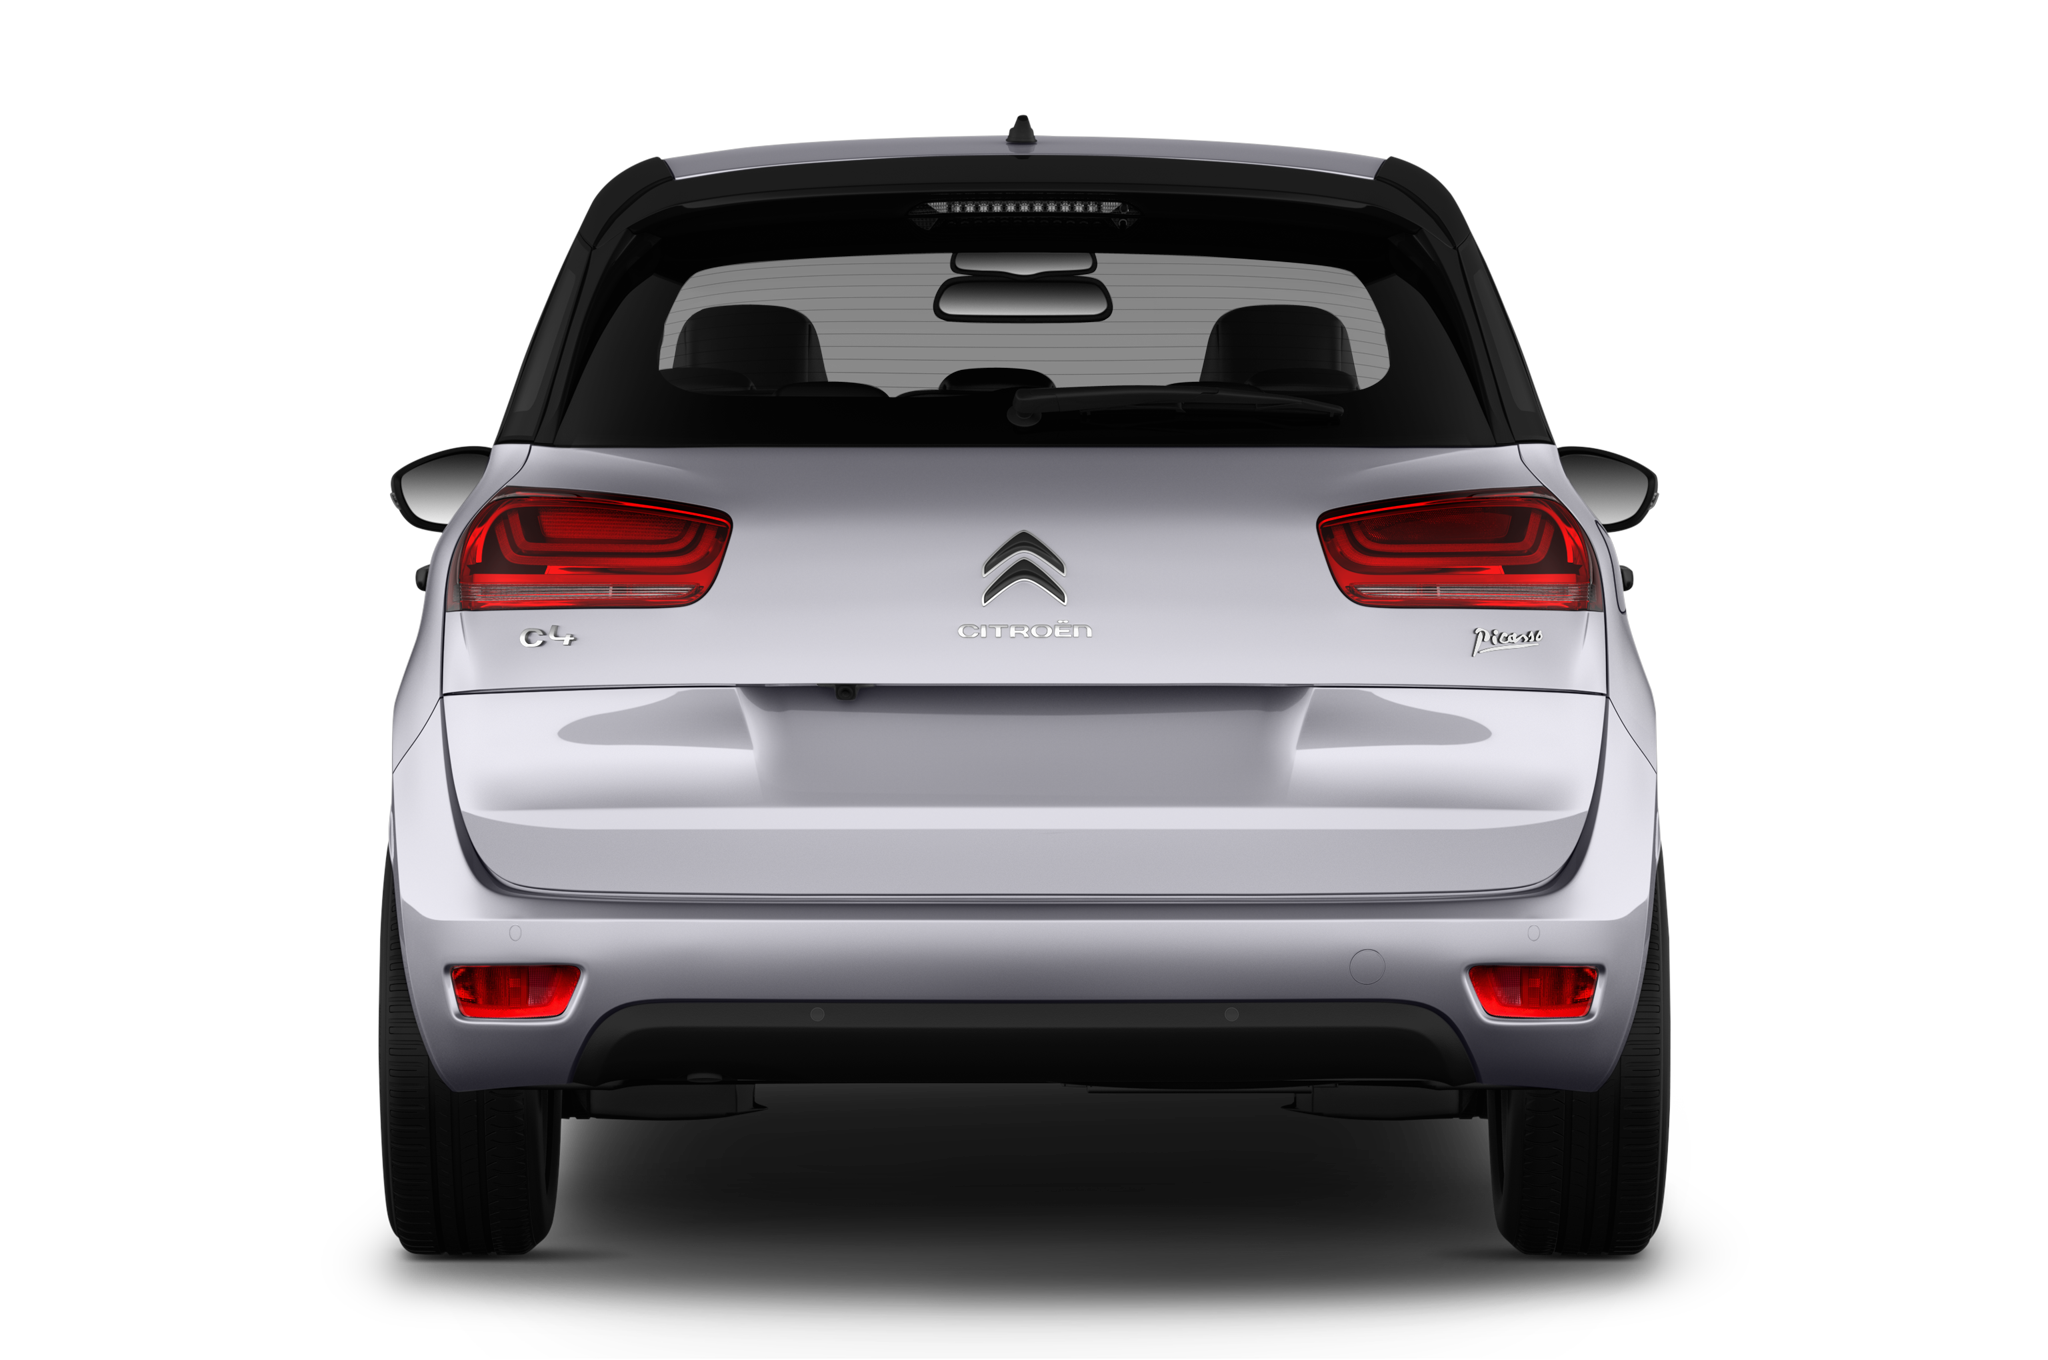 citroen c4 picasso rear view